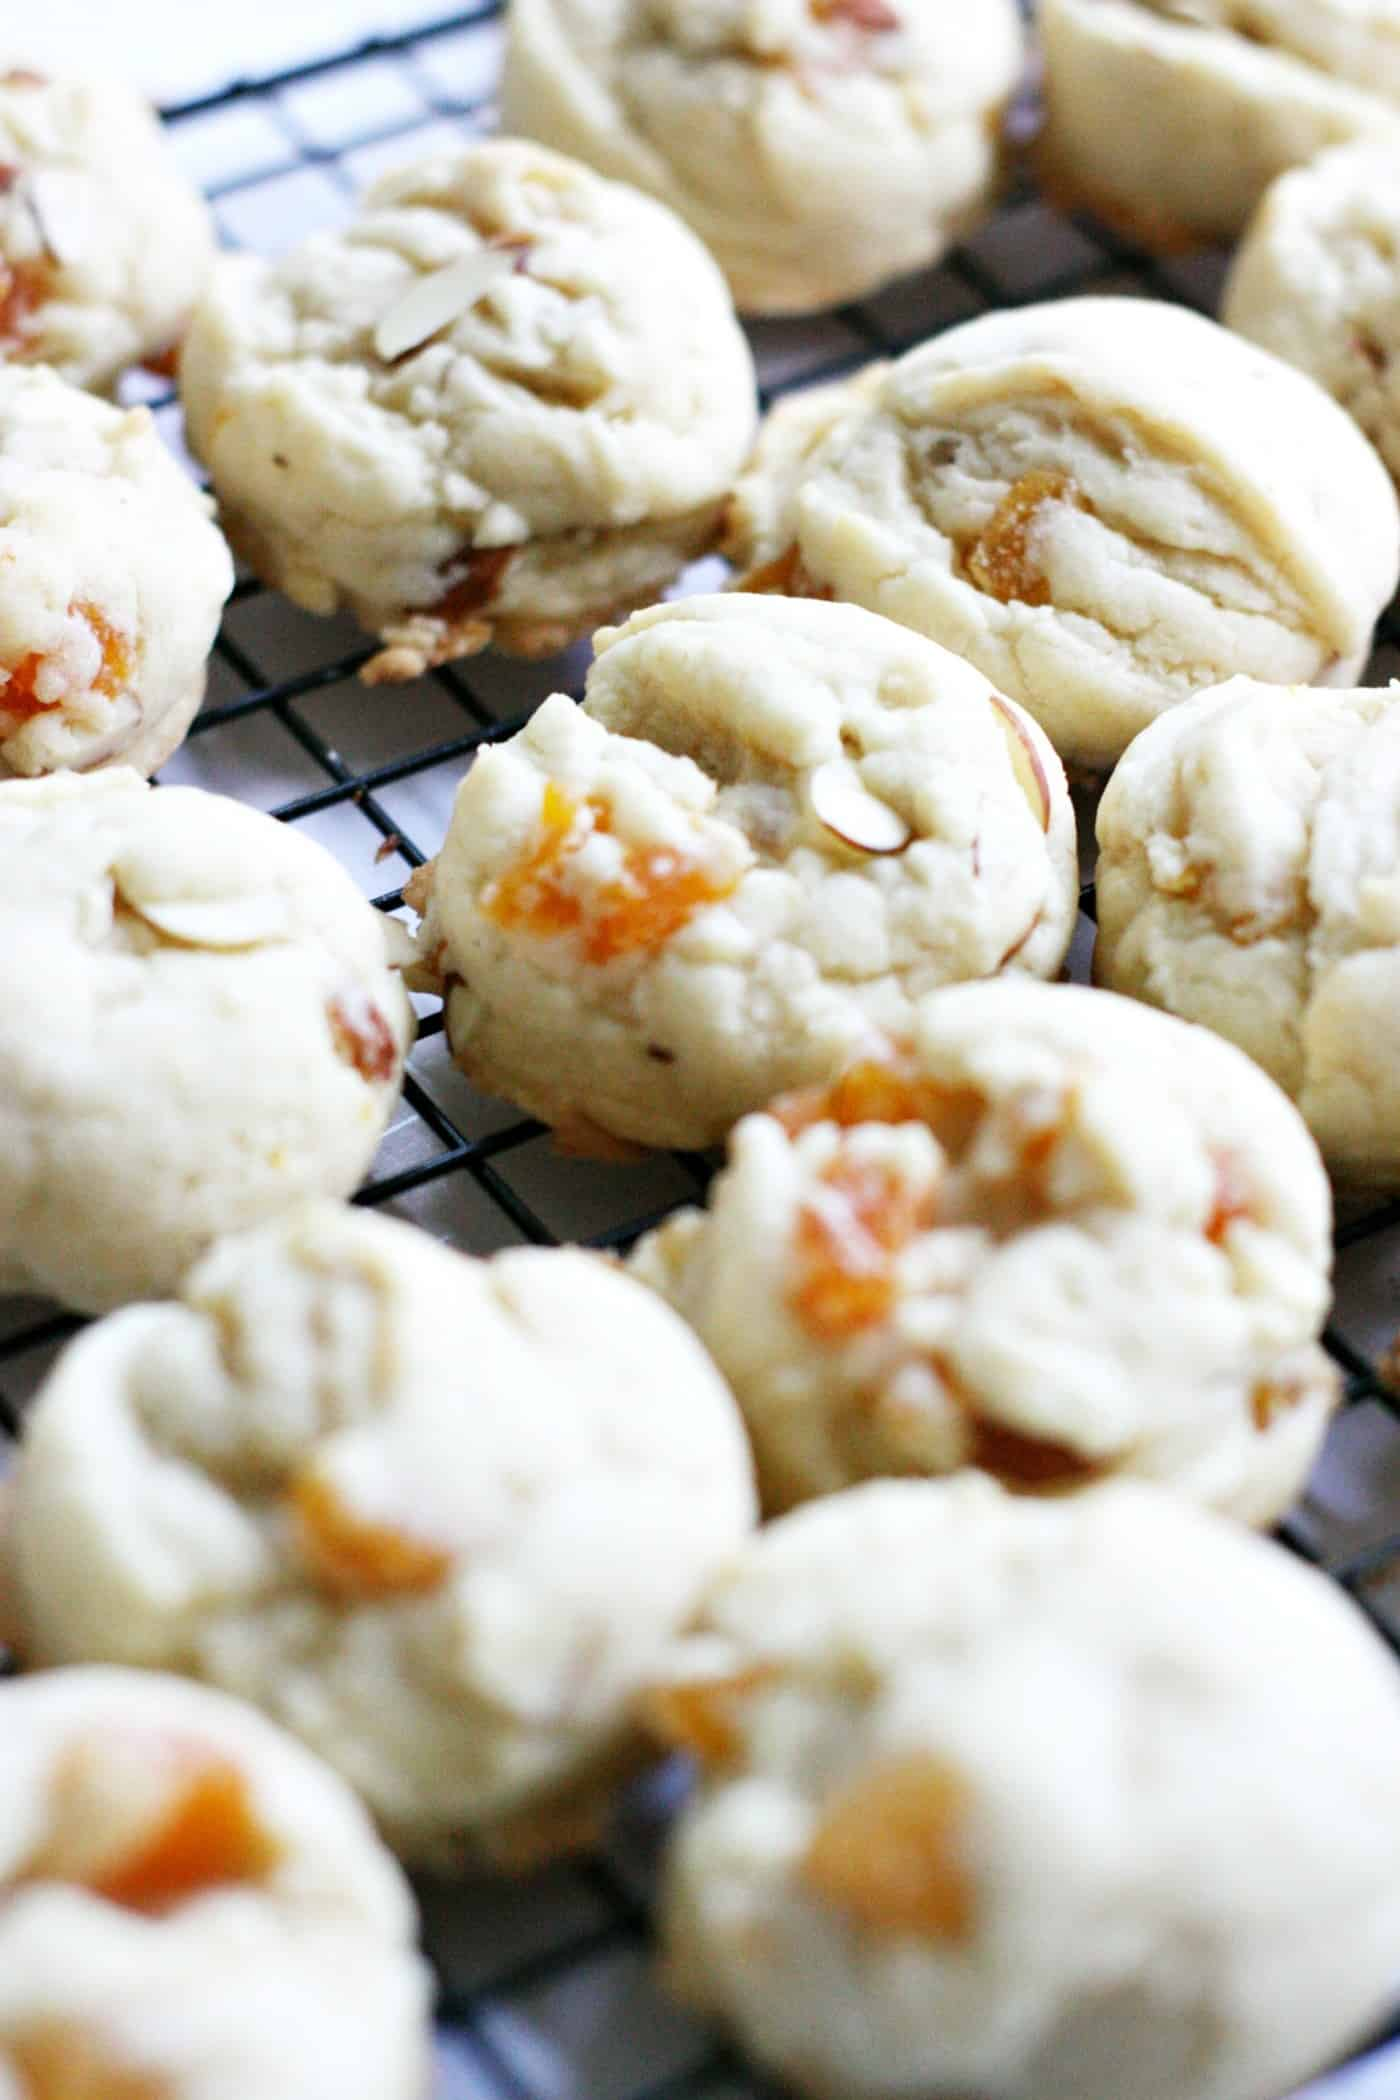 Combine sweet fruit with crunchy almonds and rich dark chocolate - you have the perfect, decadent apricot cookies for year-round indulging!